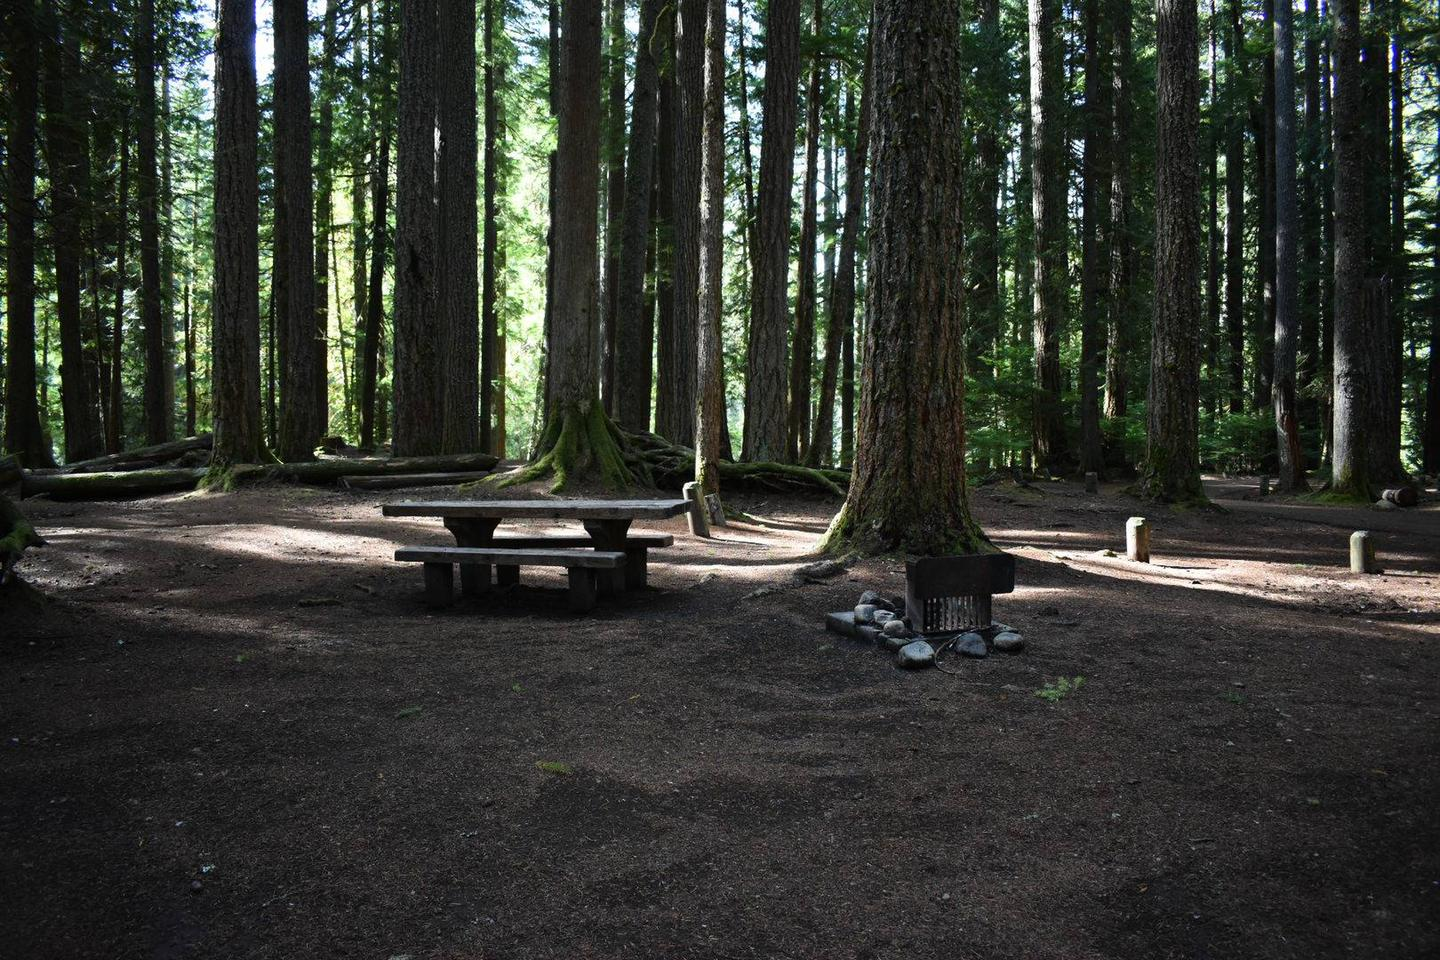 Campers are provided with a picnic table and a fire pit.